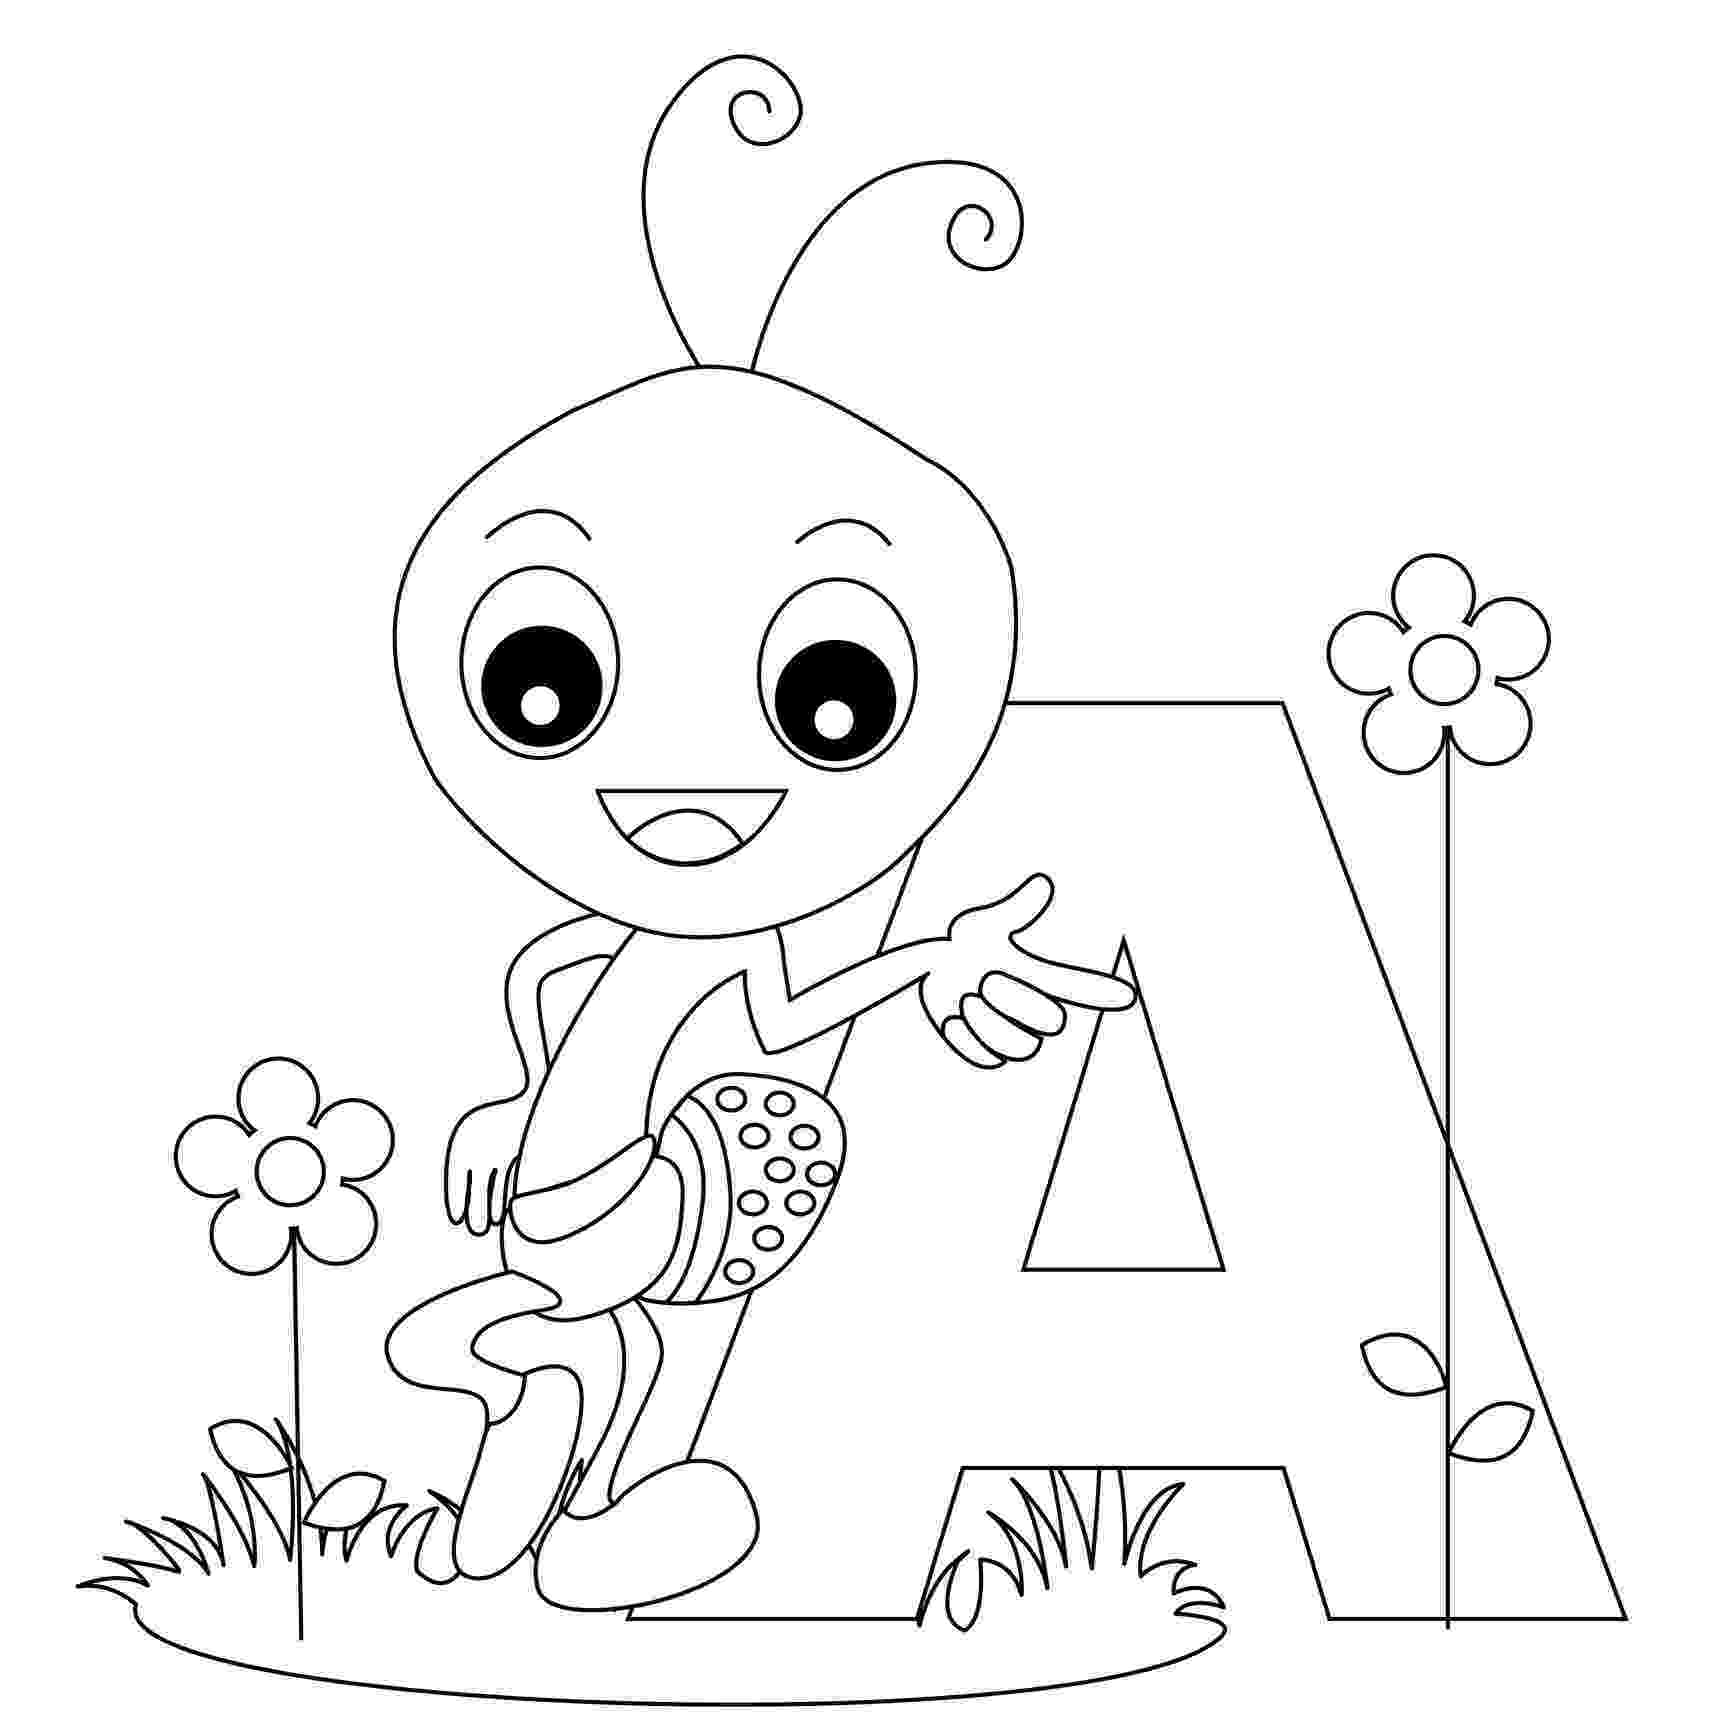 abc coloring book download free printable alphabet coloring pages for kids best coloring download abc book